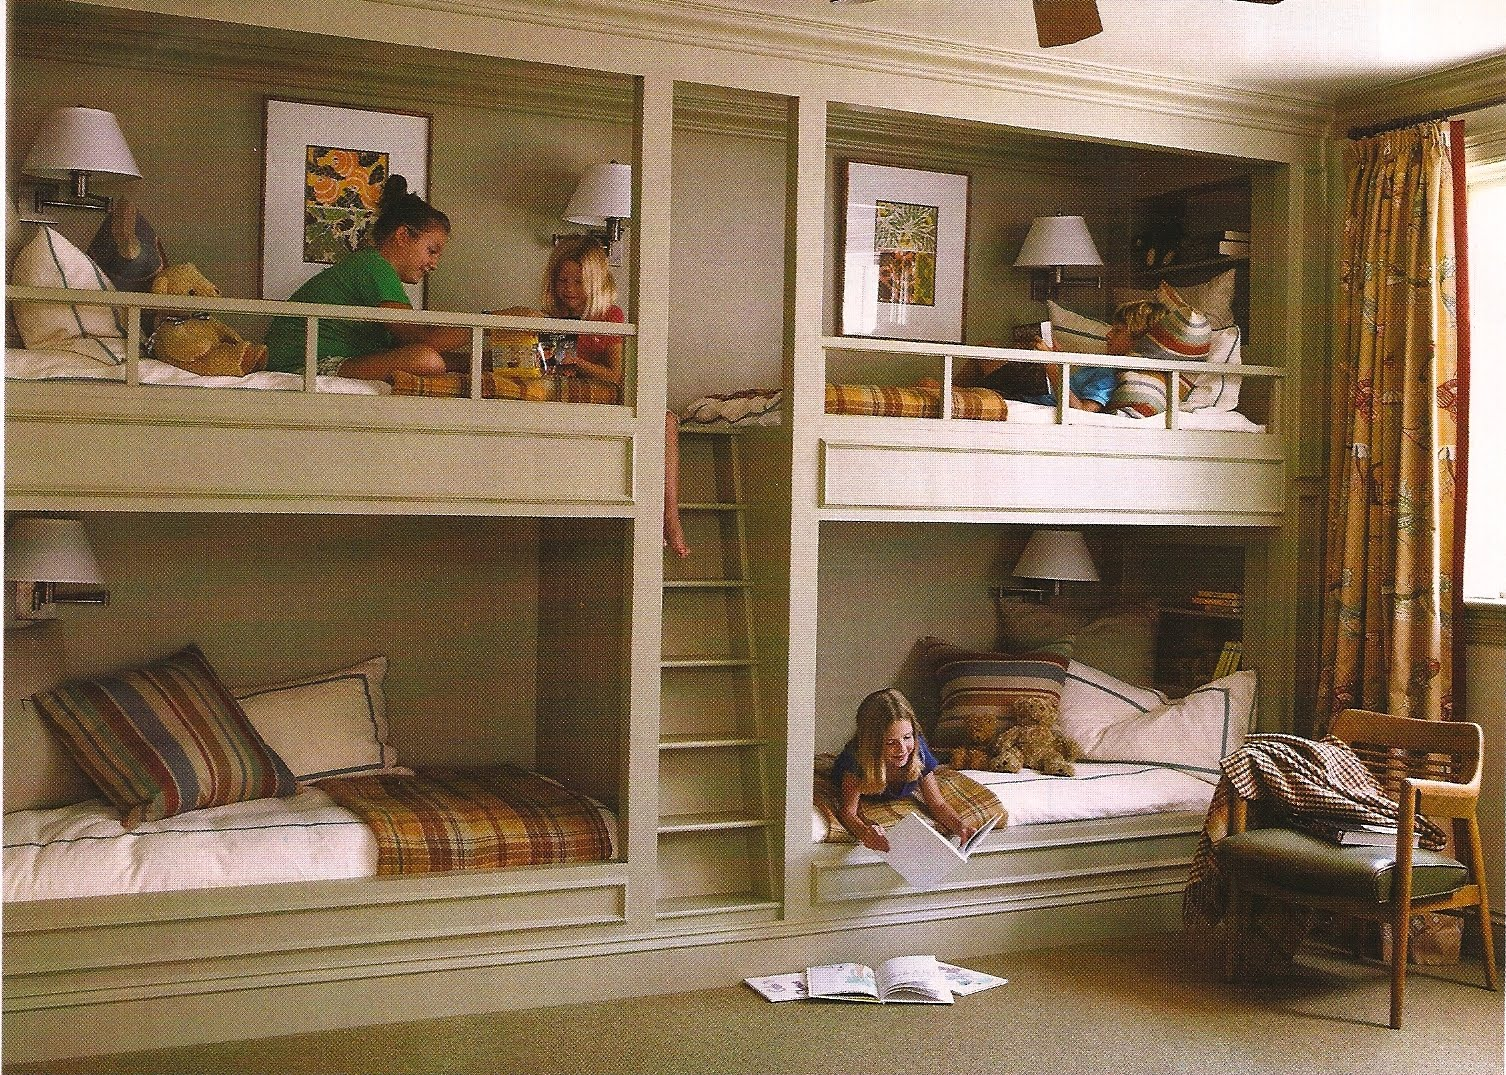 Built in Beds on Pinterest